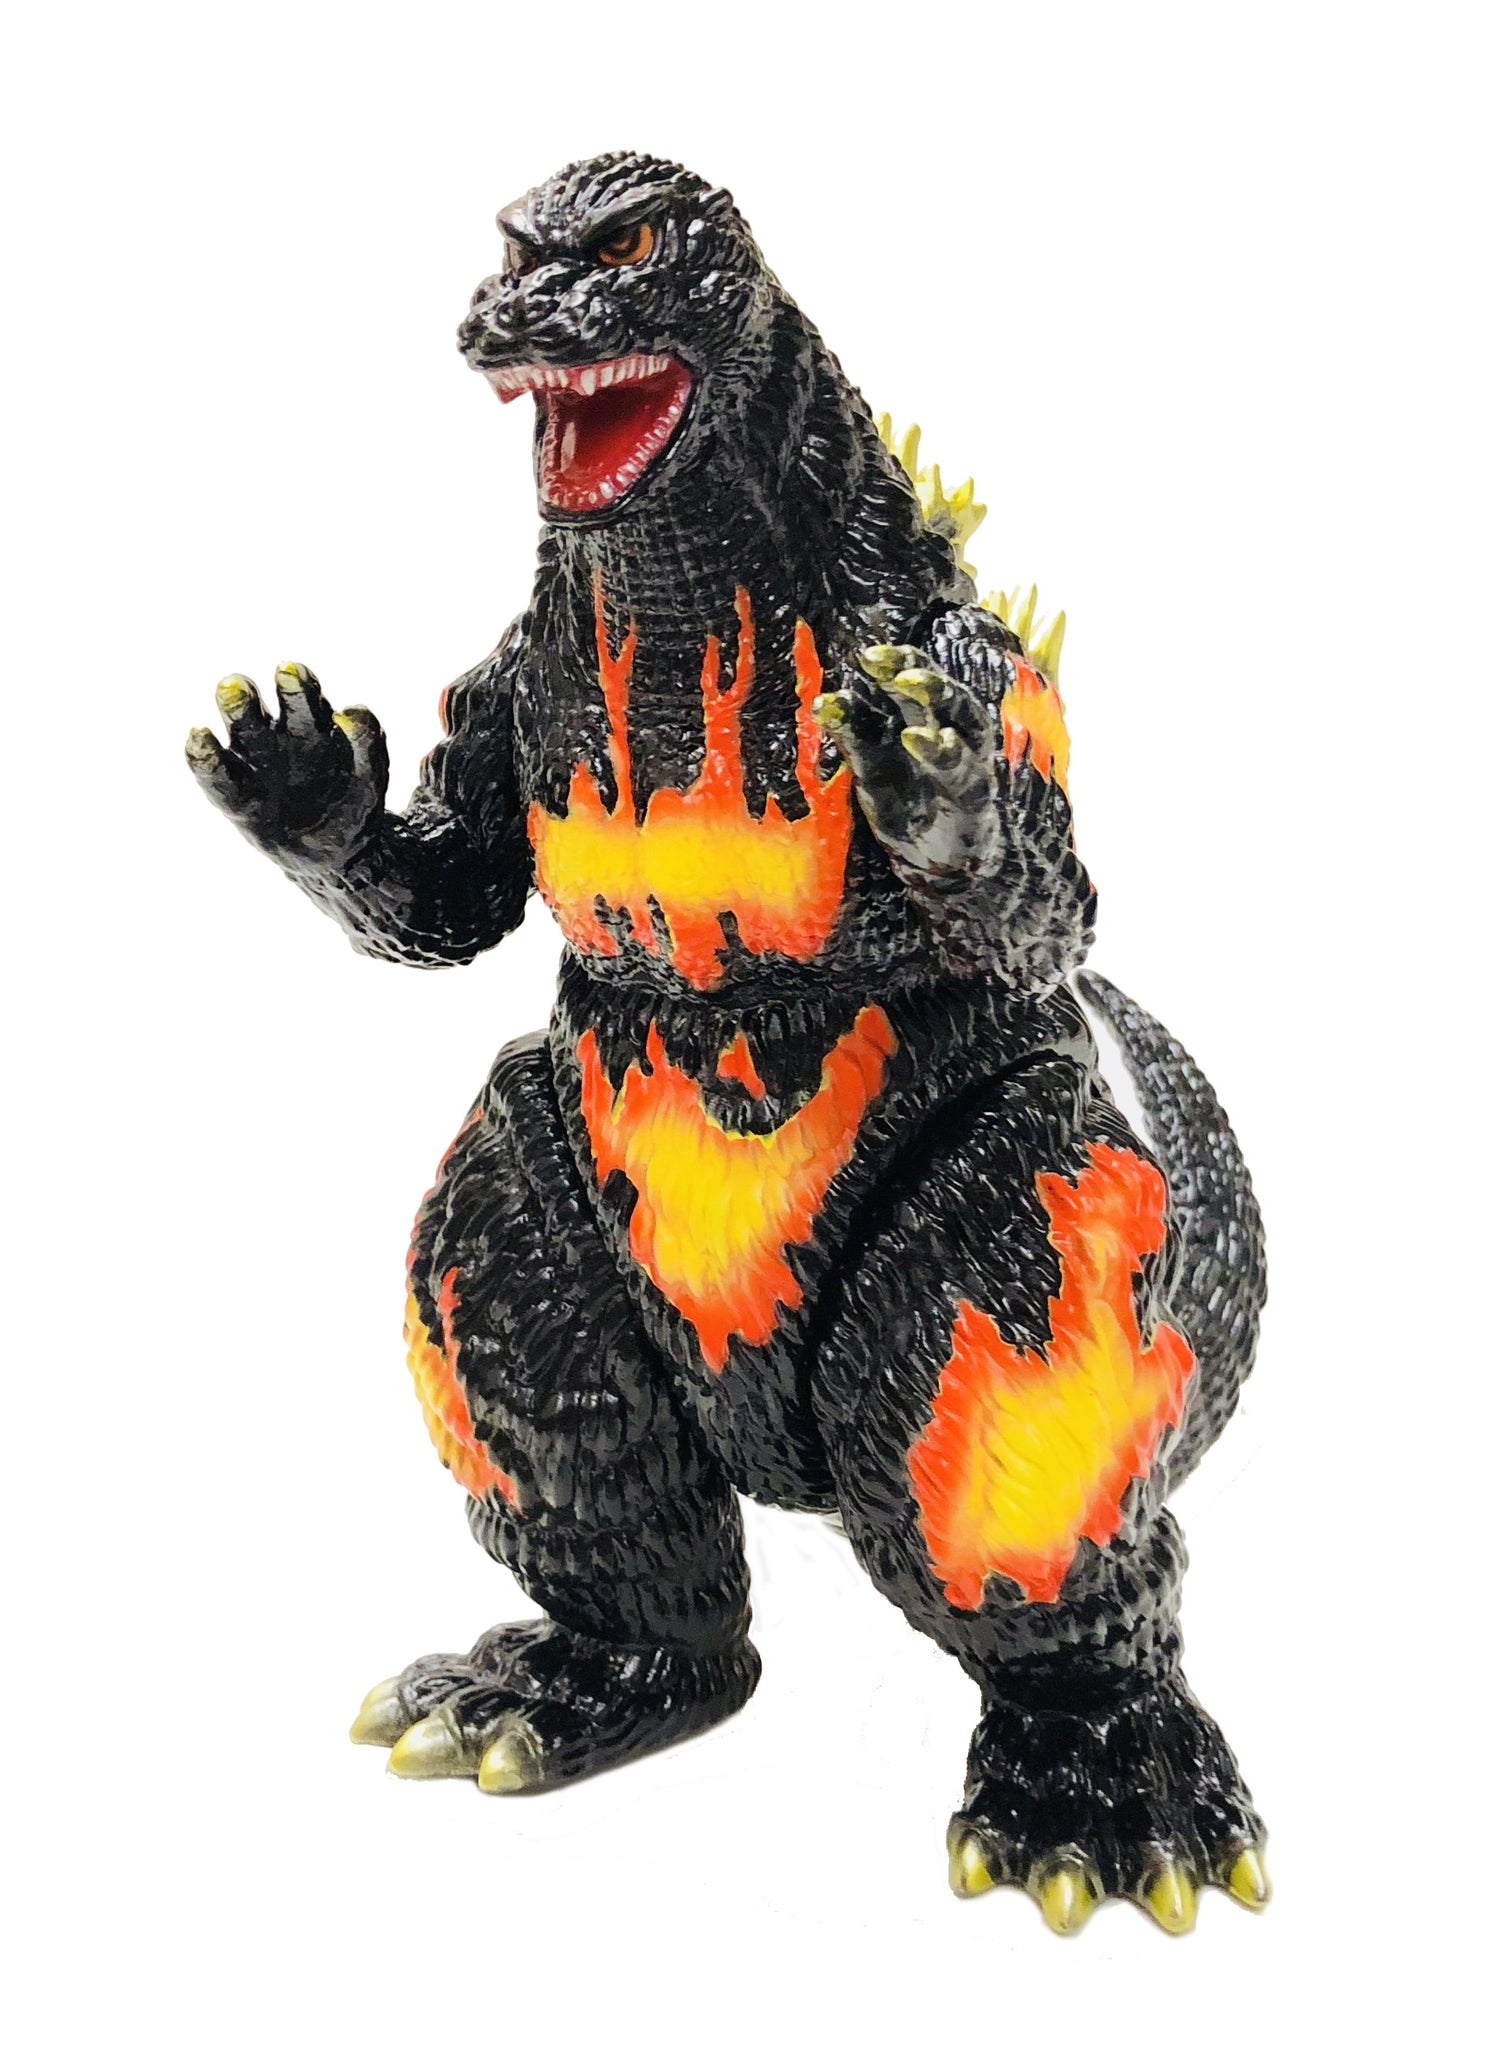 Medicom/Marmit Burning Godzilla 9+ inches tall